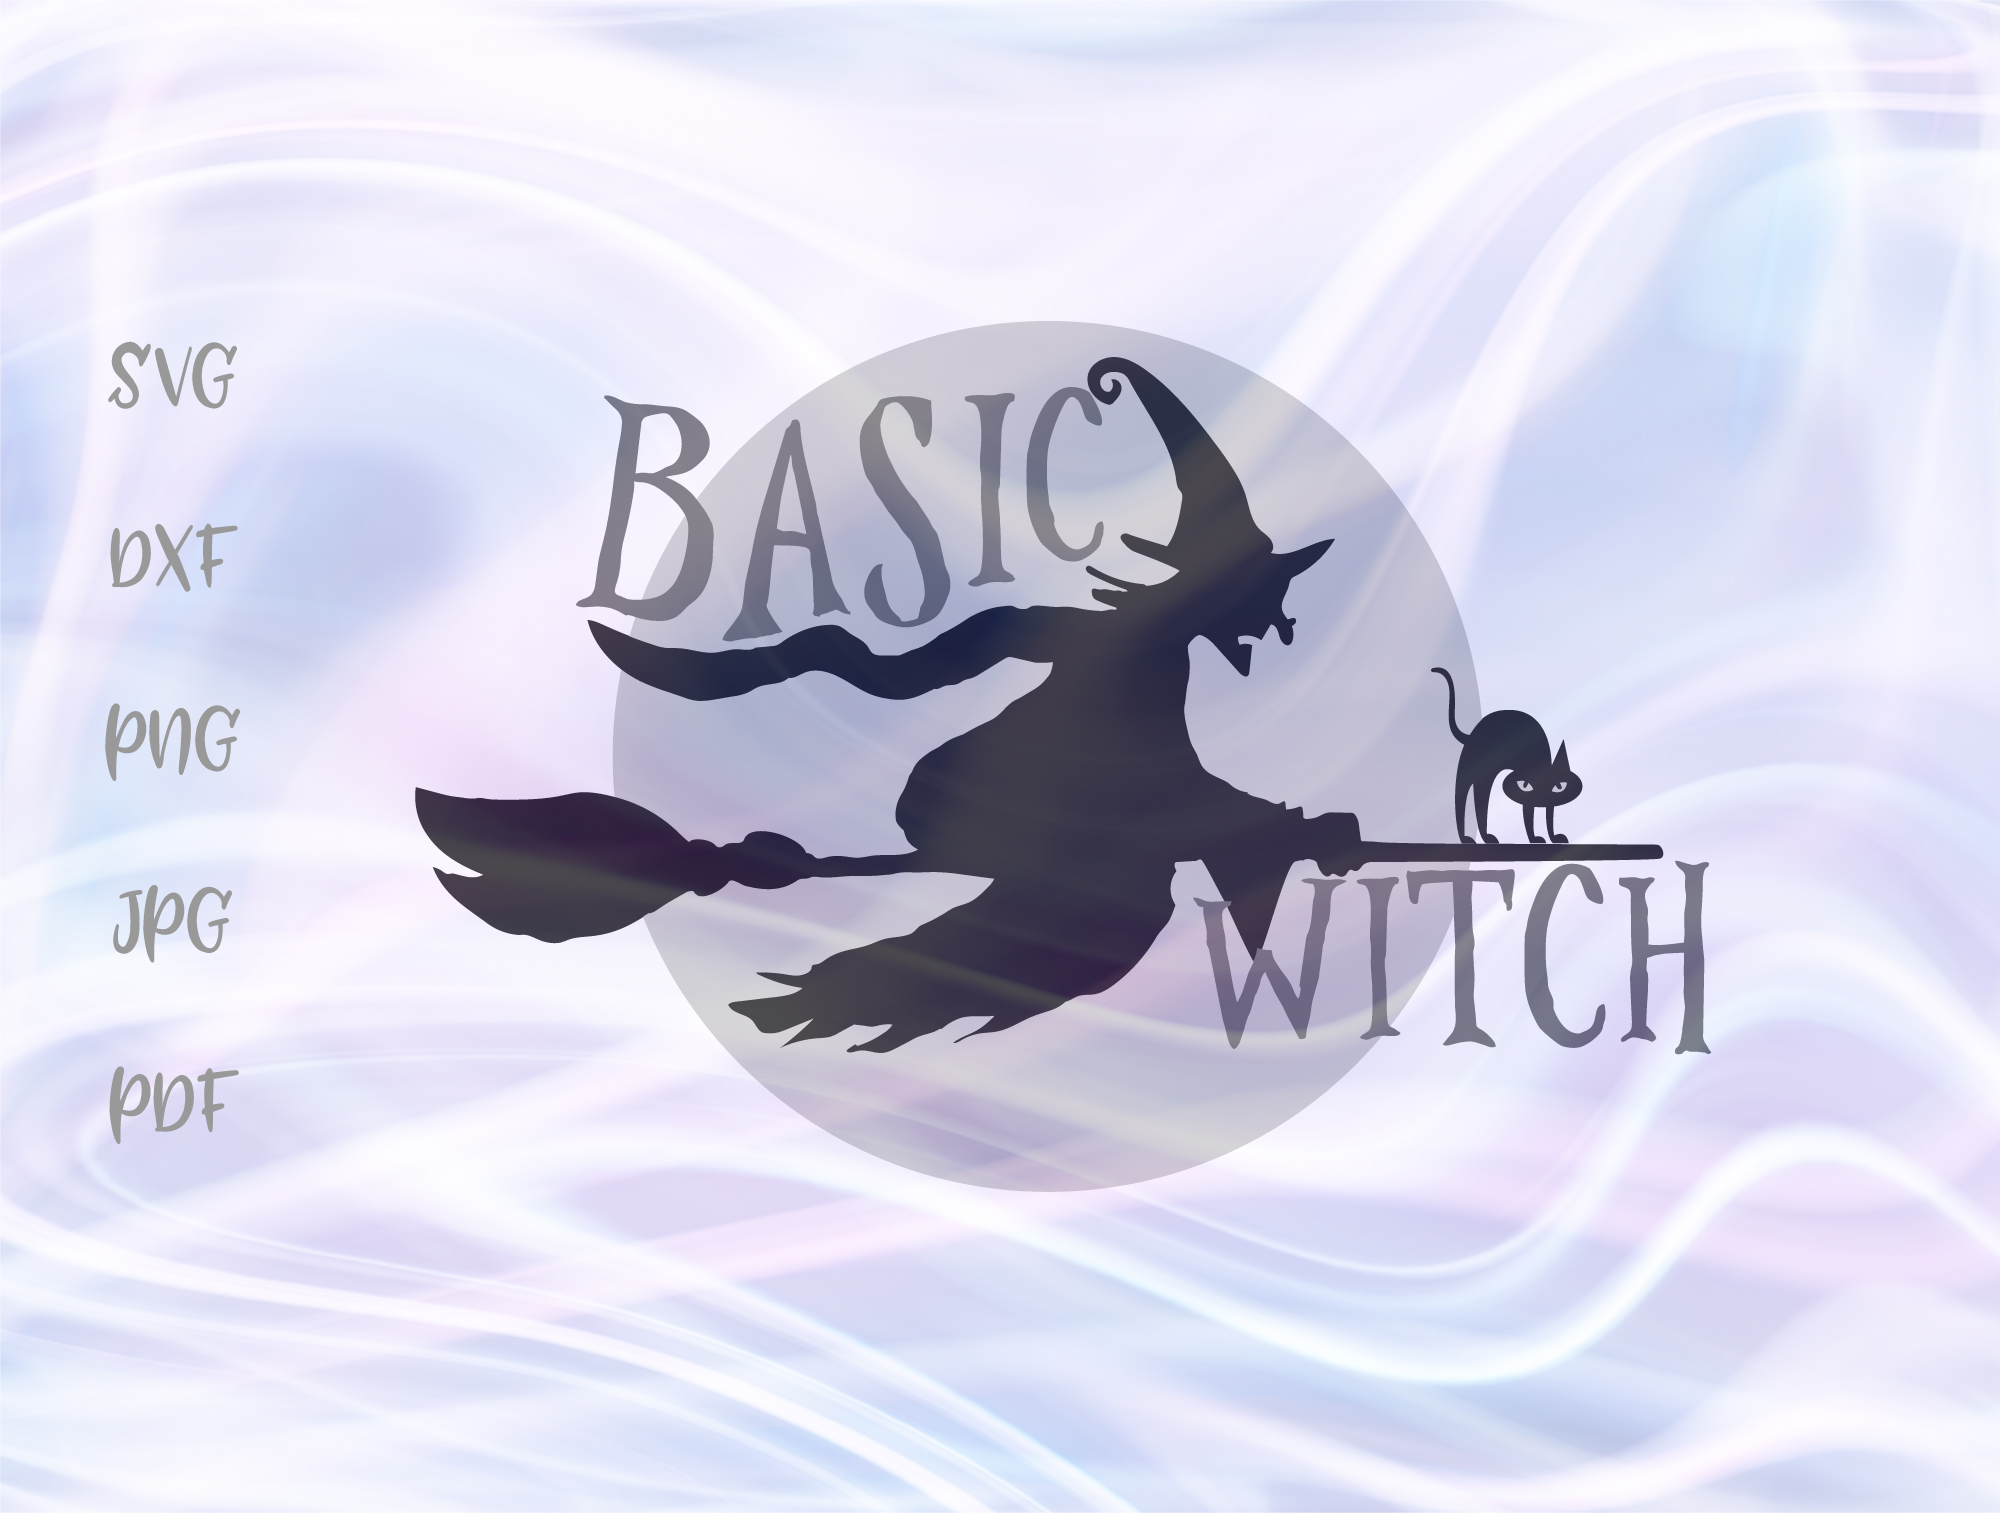 Basic Witch Happy Halloween Broom Moon Graphic By Digitals By